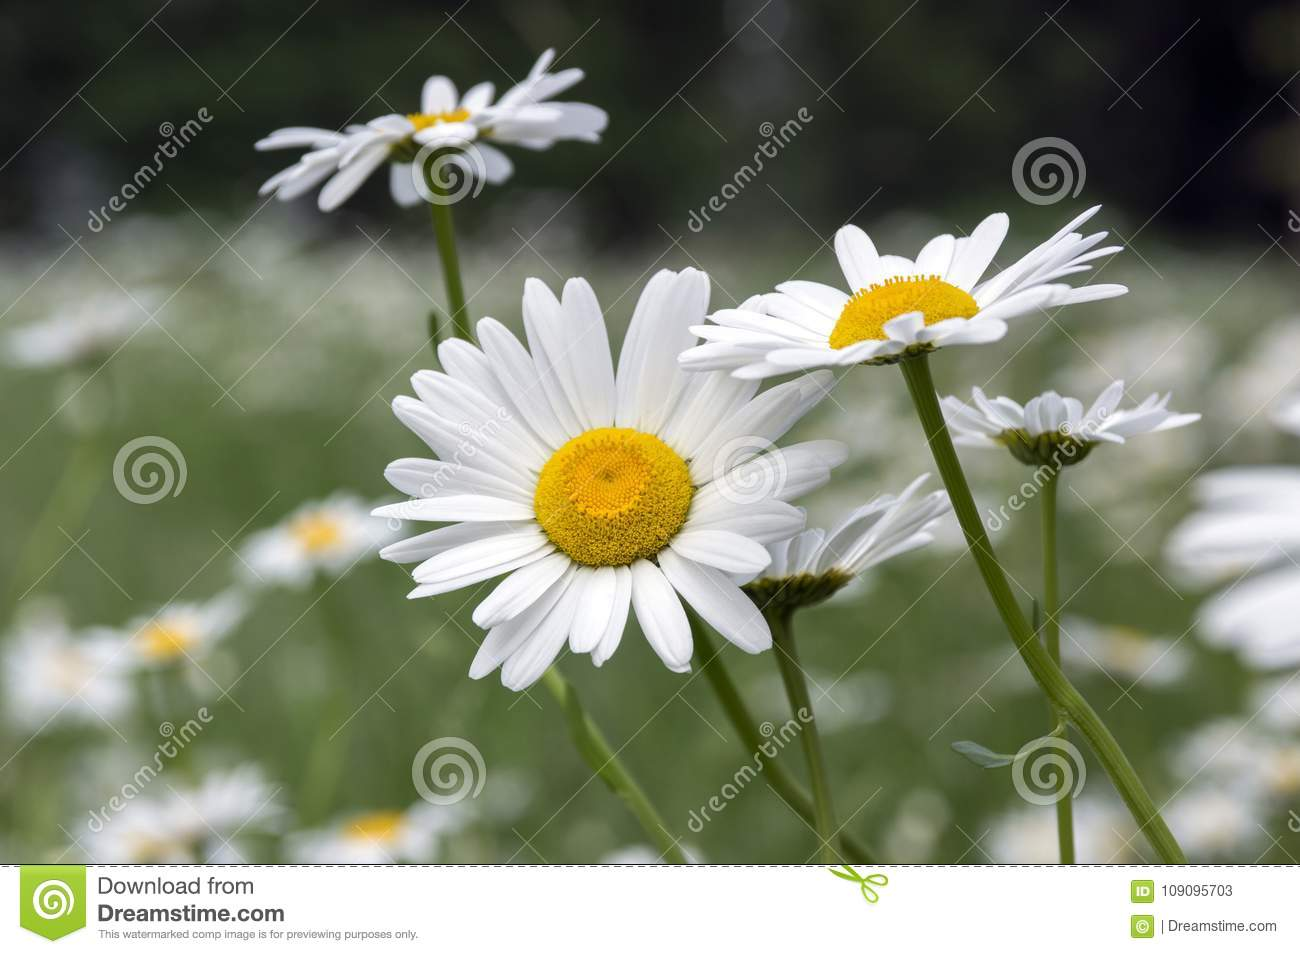 Leucanthemum vulgare meadows wild flowers with white petals and download leucanthemum vulgare meadows wild flowers with white petals and yellow center in bloom stock image mightylinksfo